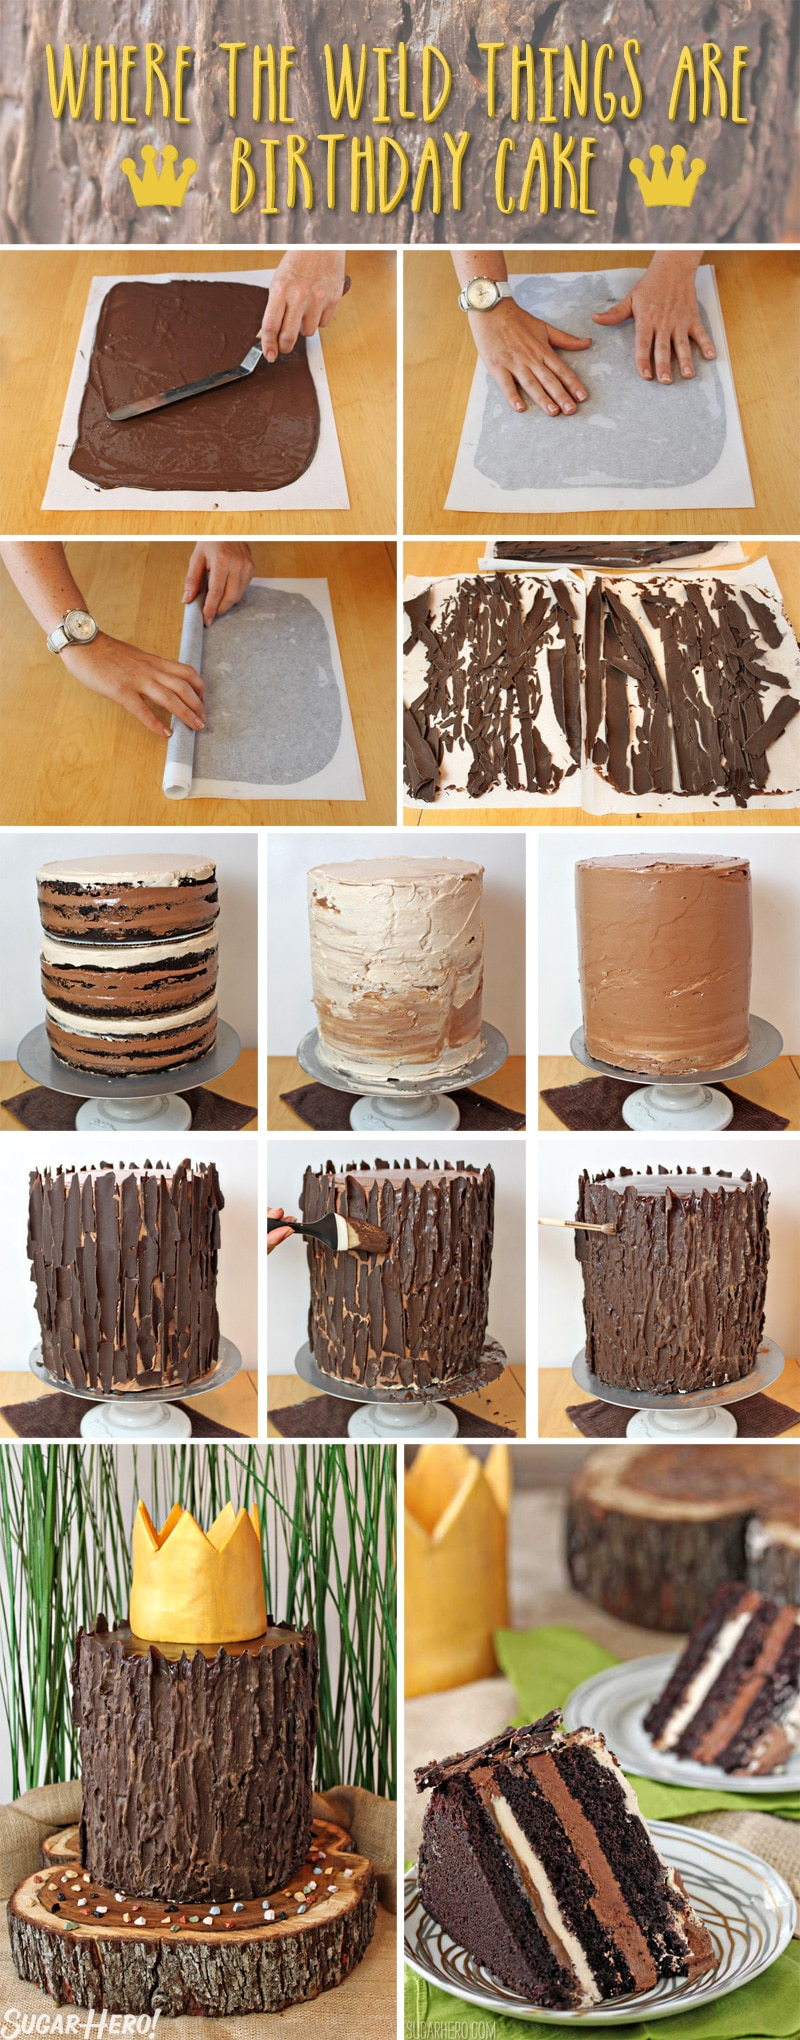 Where the Wild Things Are Birthday Cake - Collage of how to make the chocolate bark and assemble. | From SugarHero.com